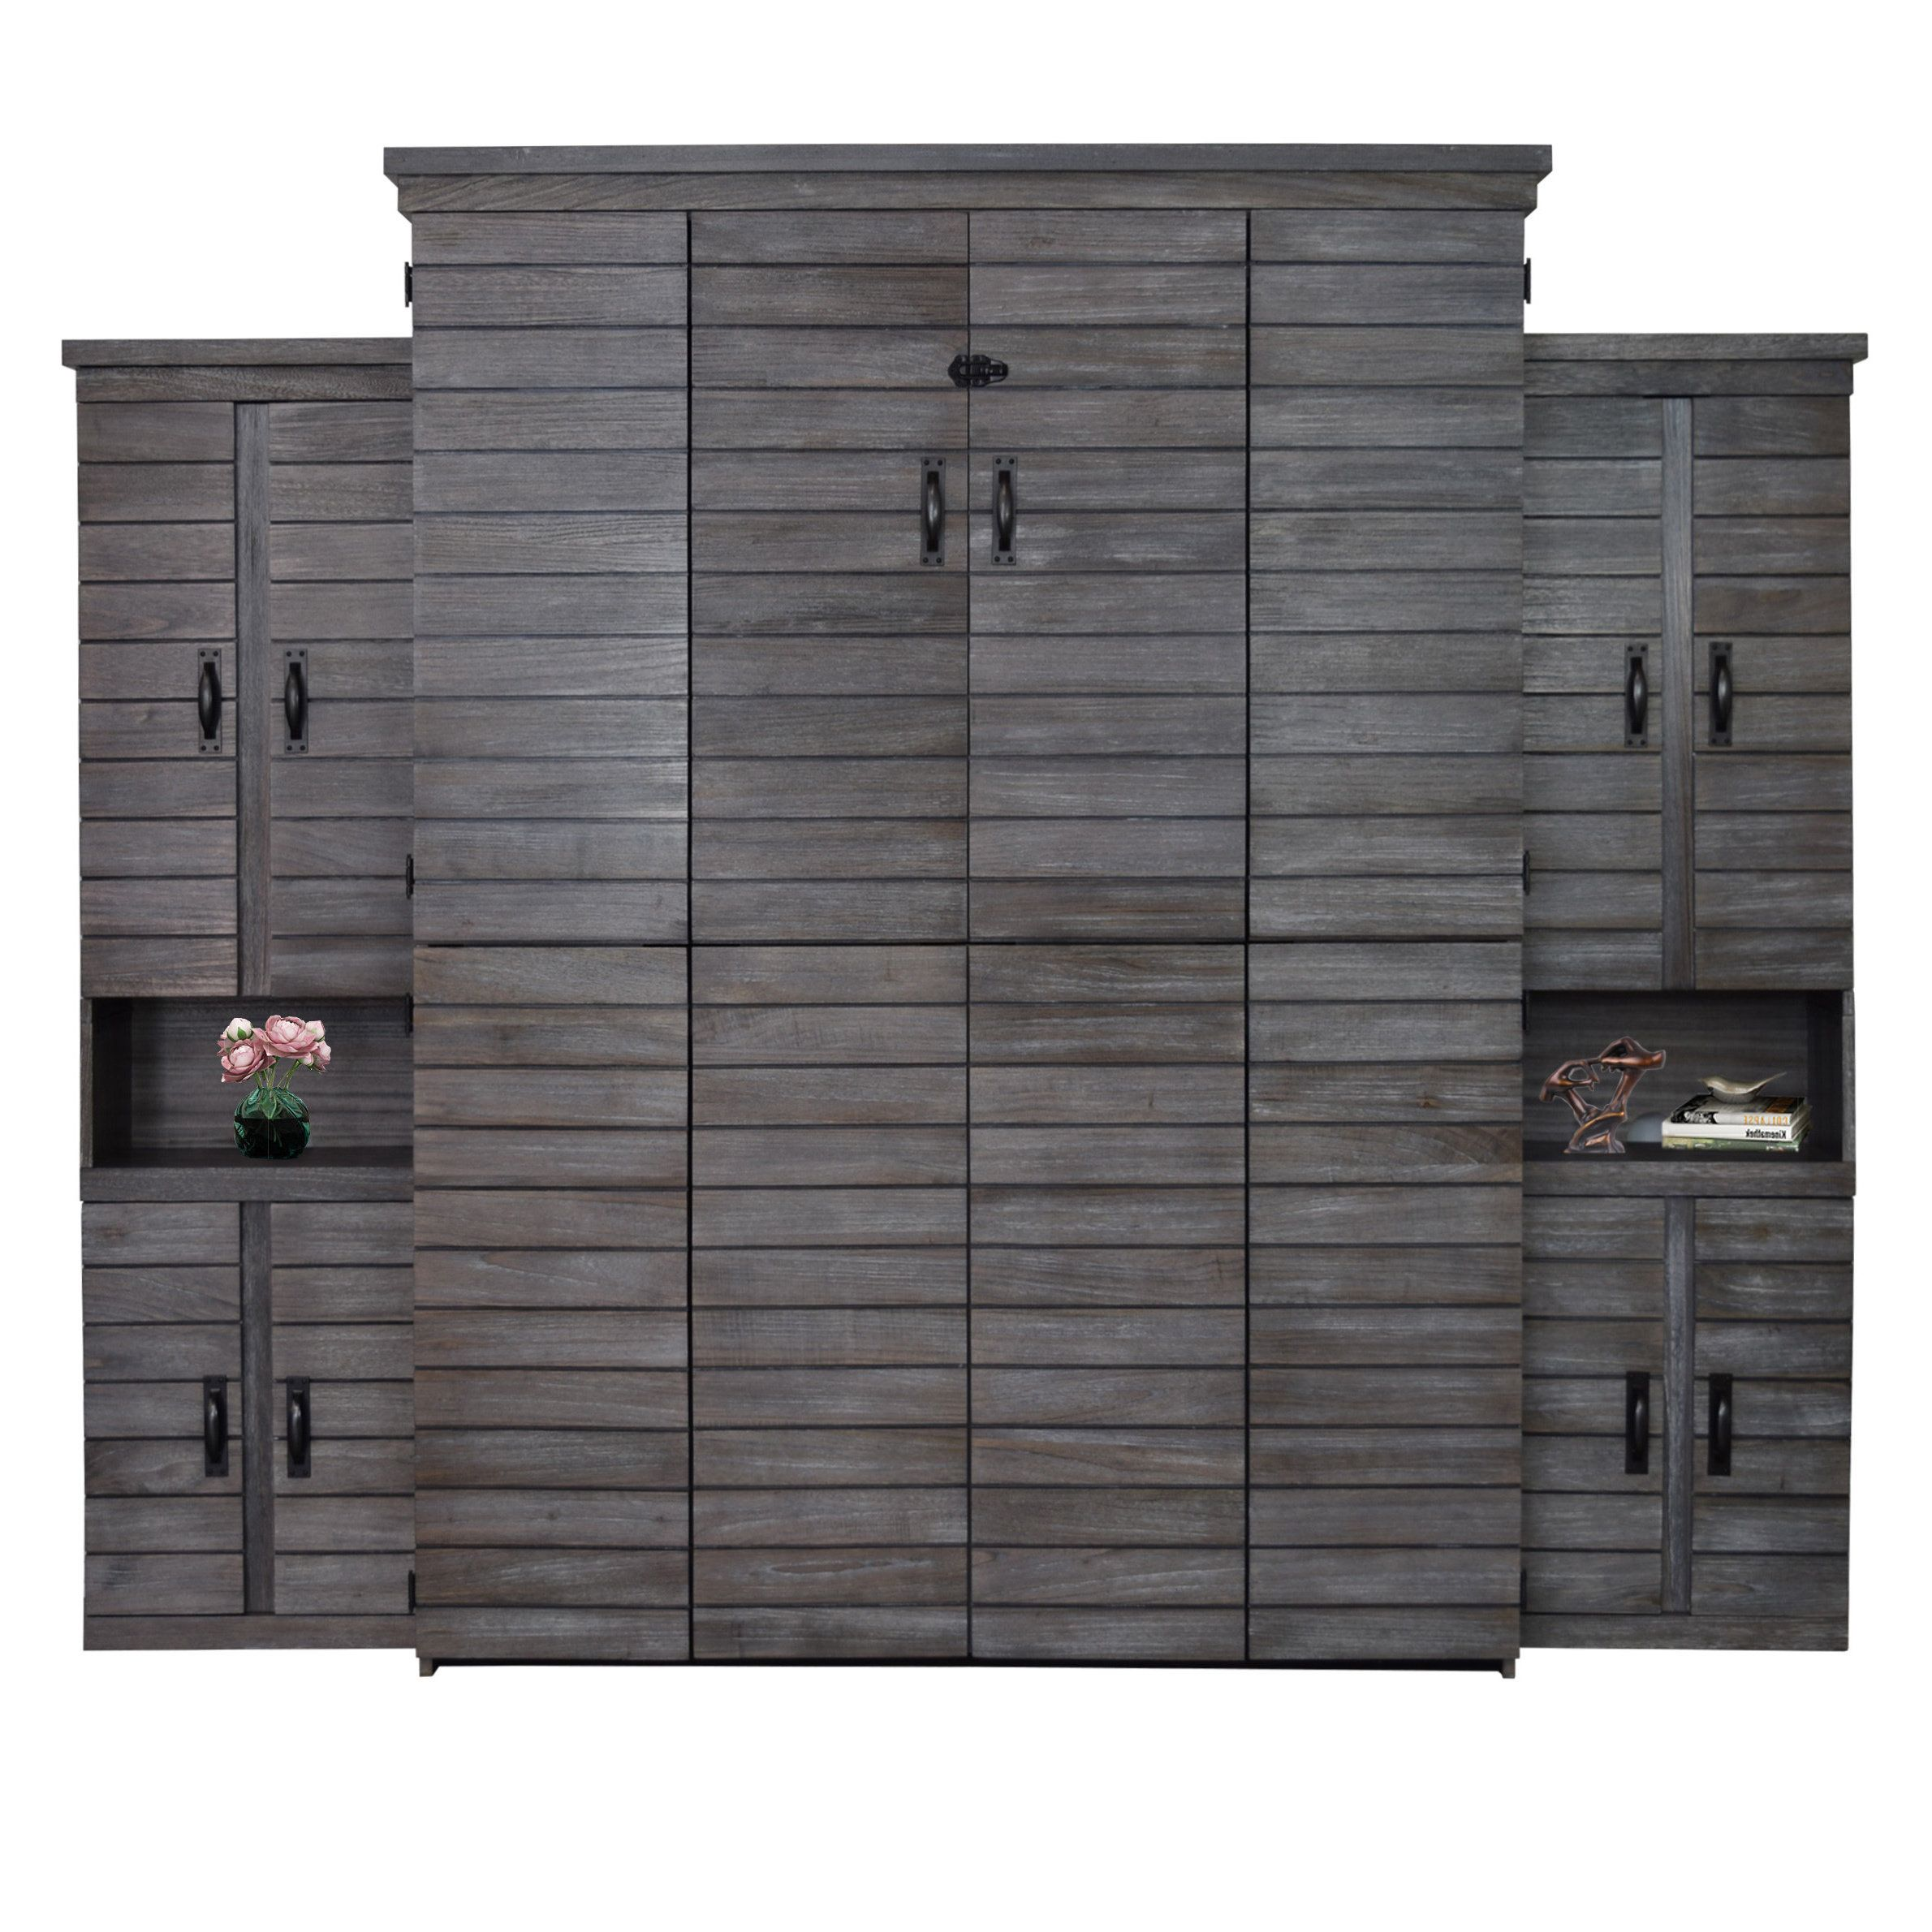 Farmhouse Shiplap Queen Murphy Bed With Two Door Bookcase In Grey White Finish Murphy Bed Murphy Bed Plans Modern Murphy Beds